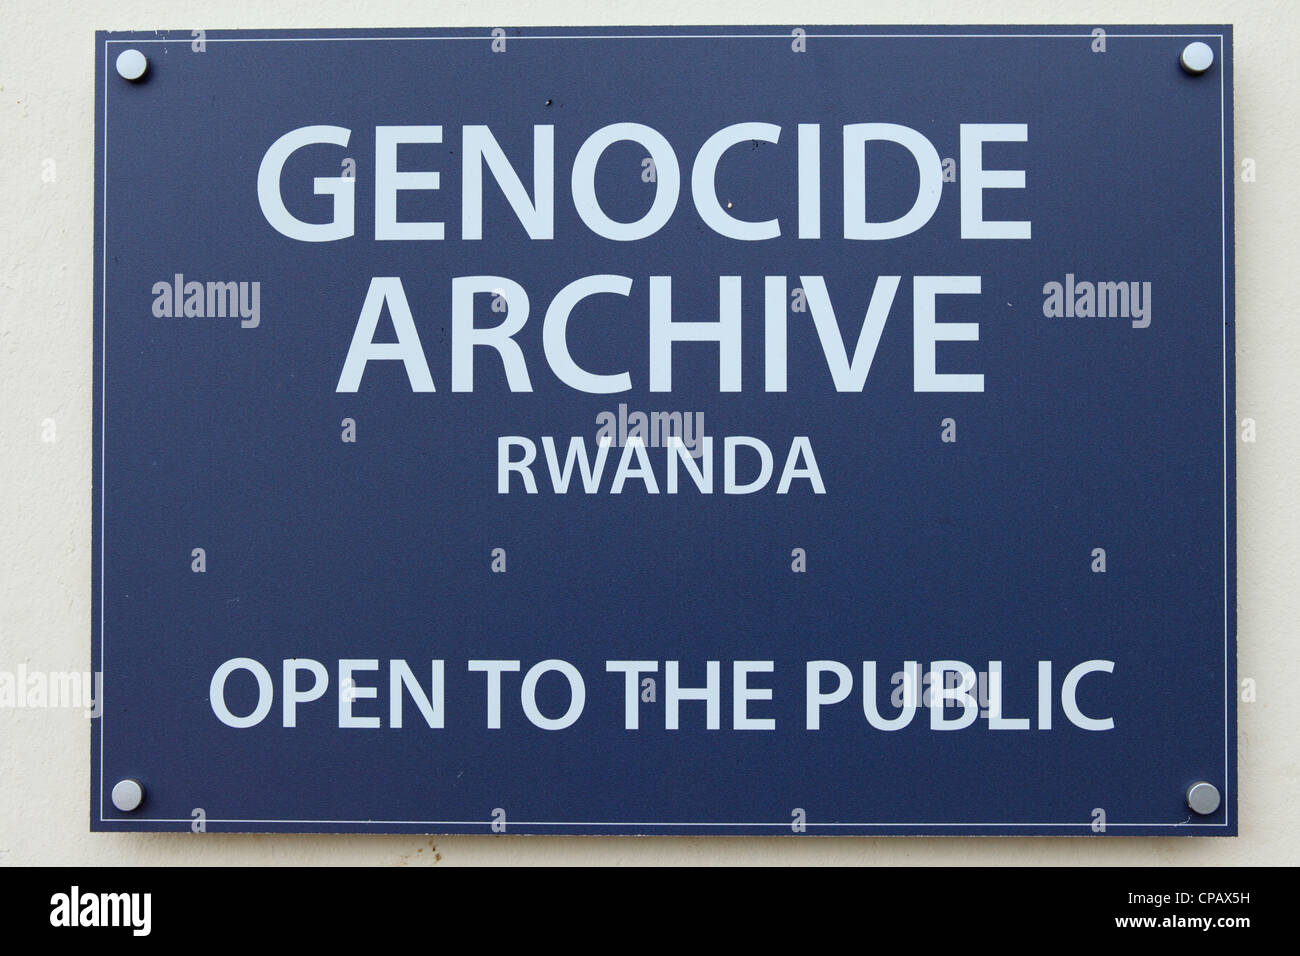 Sign for the Genocide Archive at the Kigali Memorial Centre at Kigali, Rwanda. - Stock Image